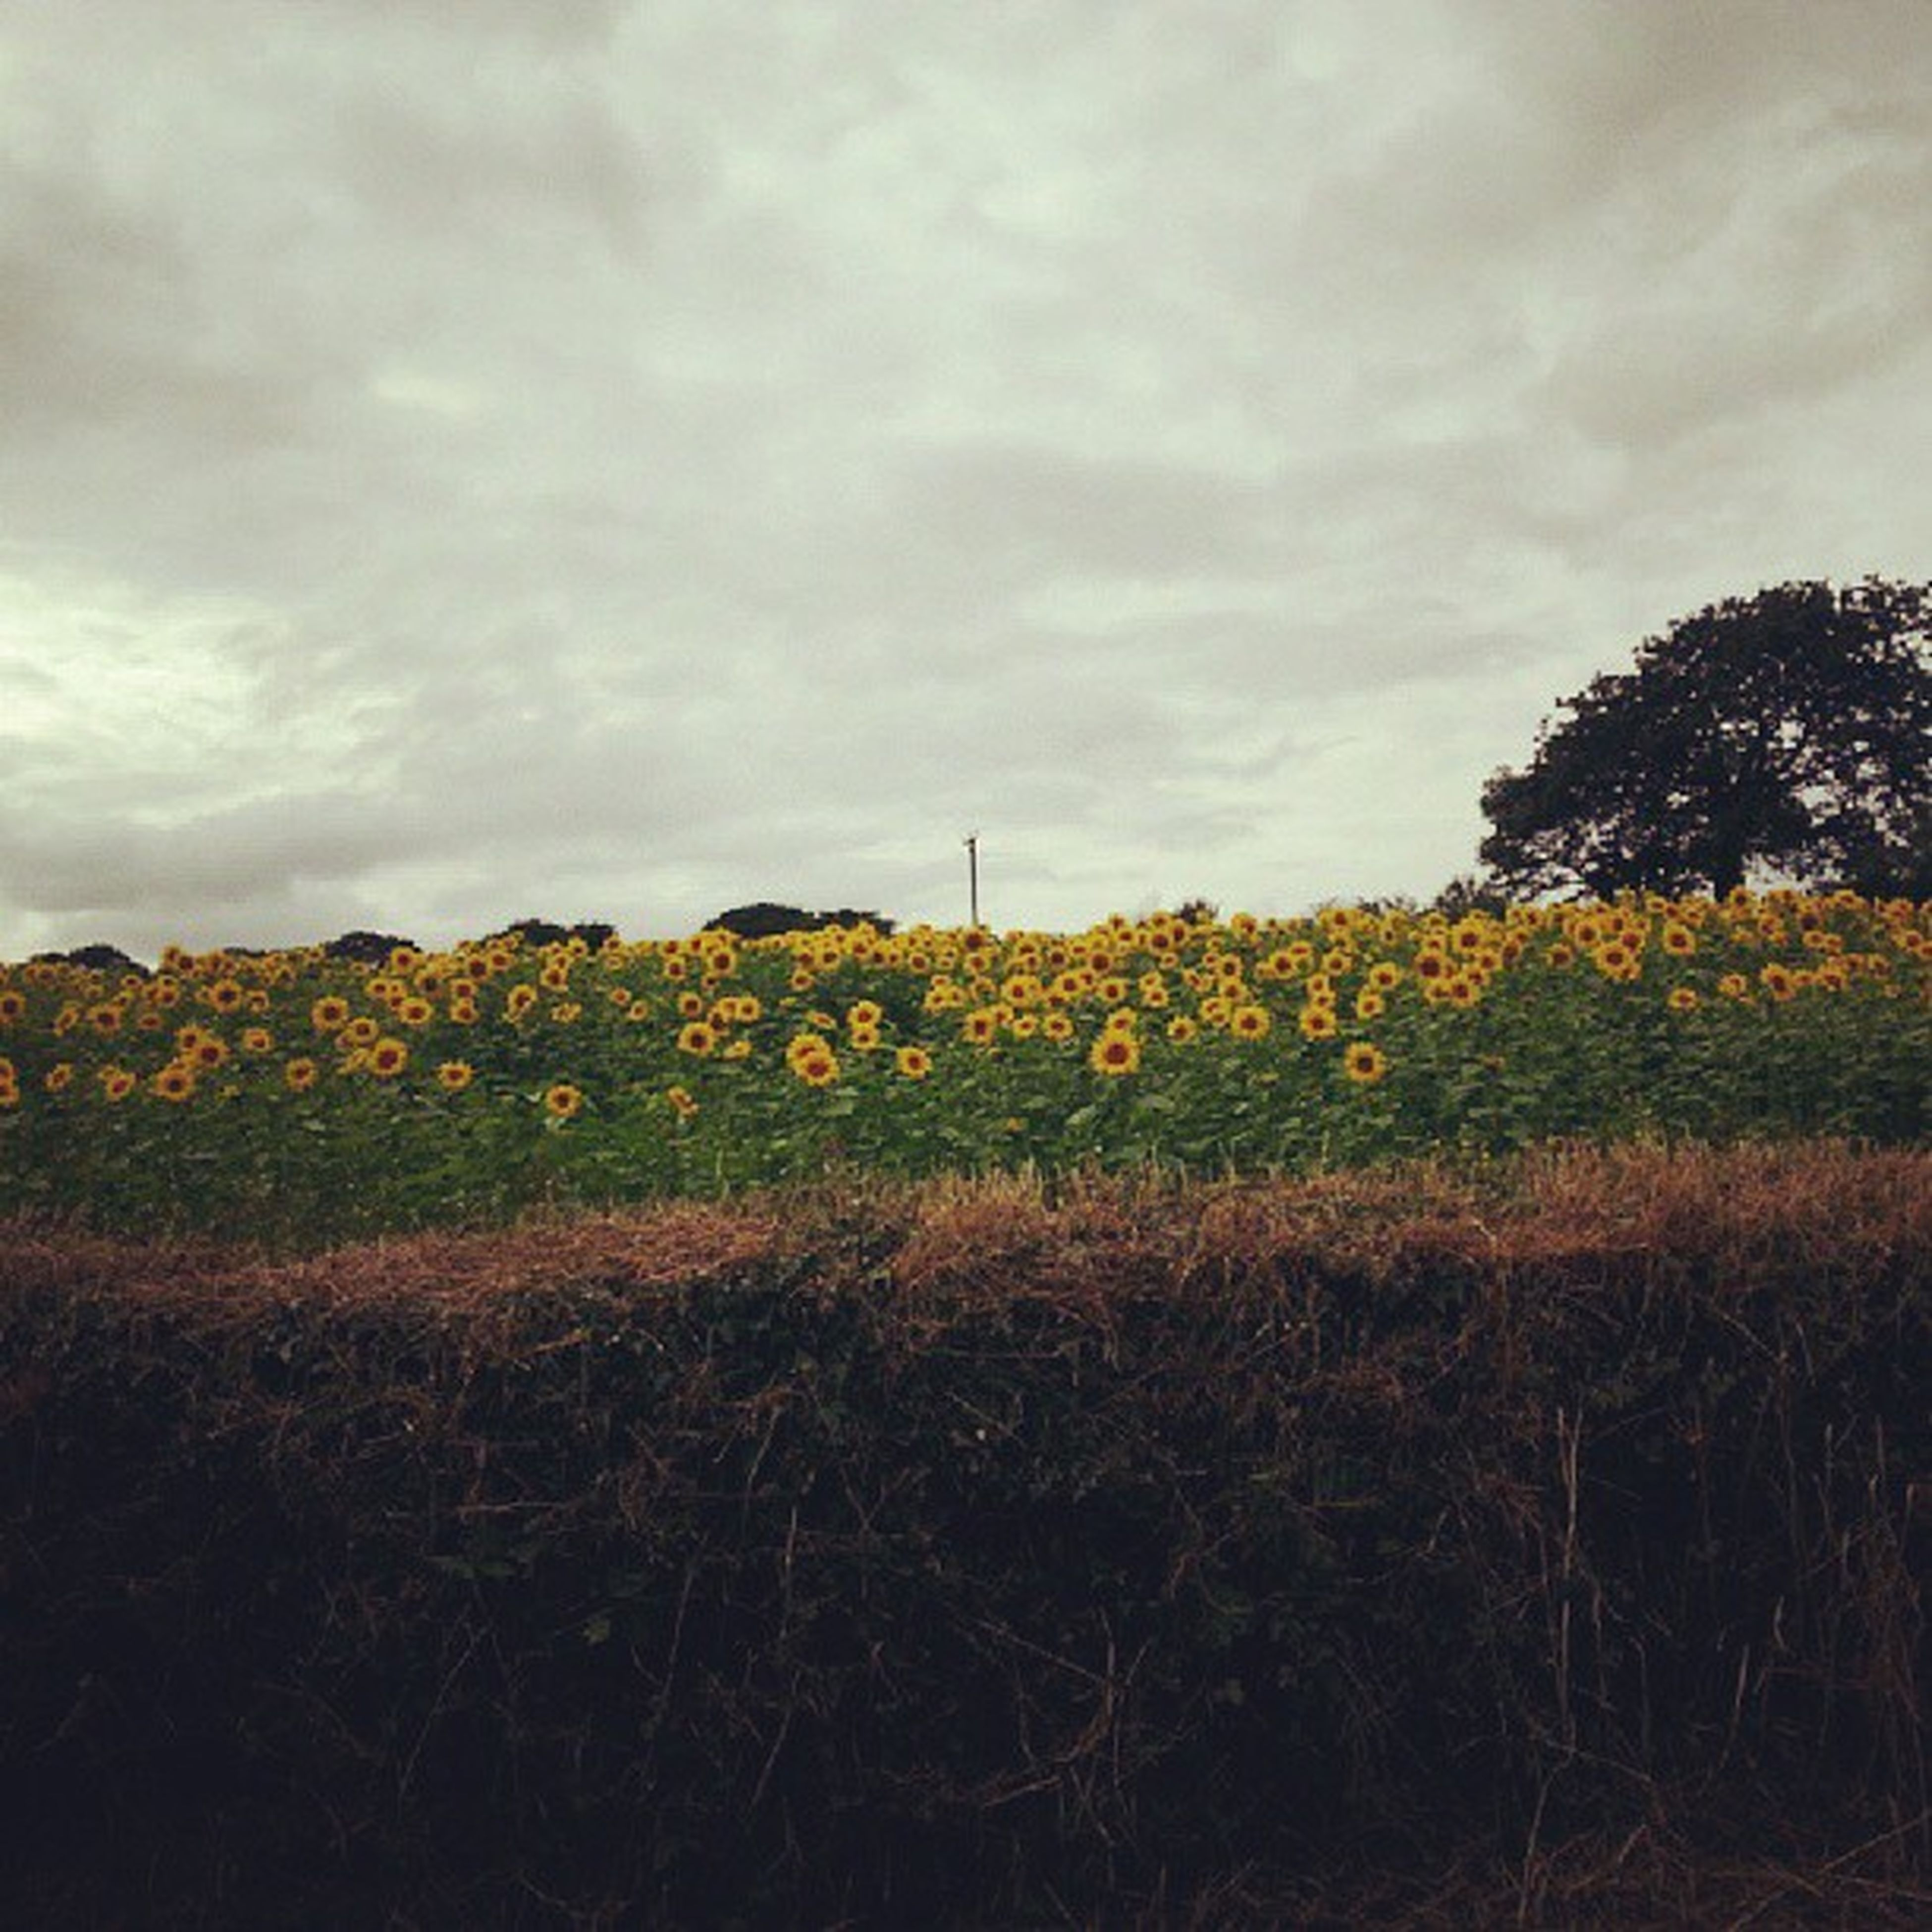 field, sky, growth, rural scene, agriculture, cloud - sky, beauty in nature, landscape, tranquil scene, tranquility, nature, flower, scenics, farm, tree, plant, cloudy, yellow, crop, cloud